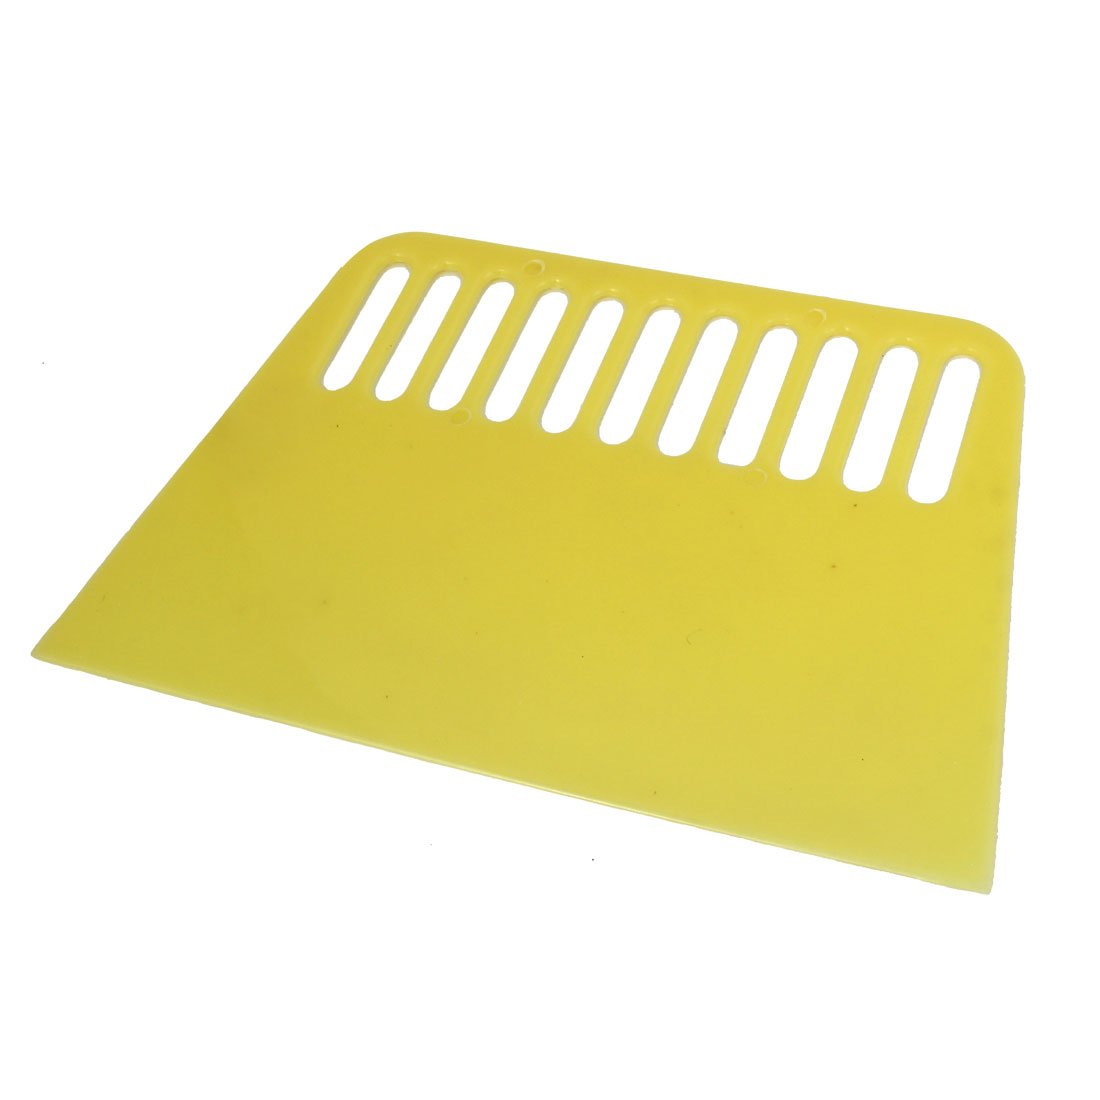 5 Wide Plastic Varnish Paint Remover Putty Scraper Light Yellow uxcell a14090500ux0040